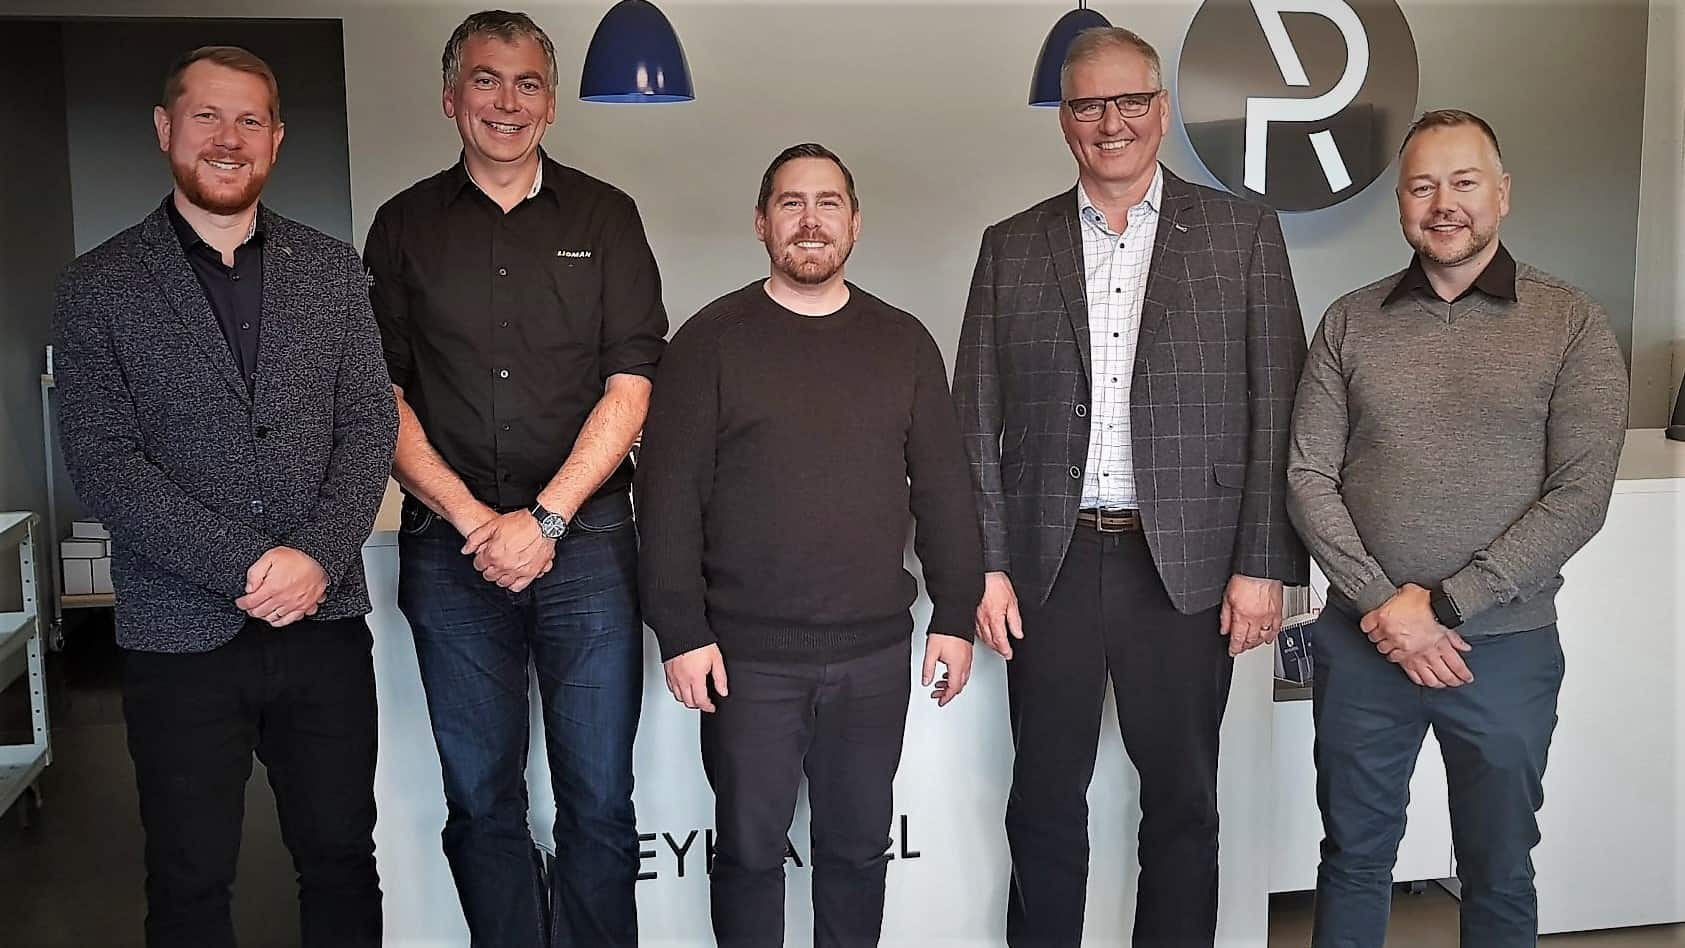 LIGMAN partners with Reykjafell in Iceland